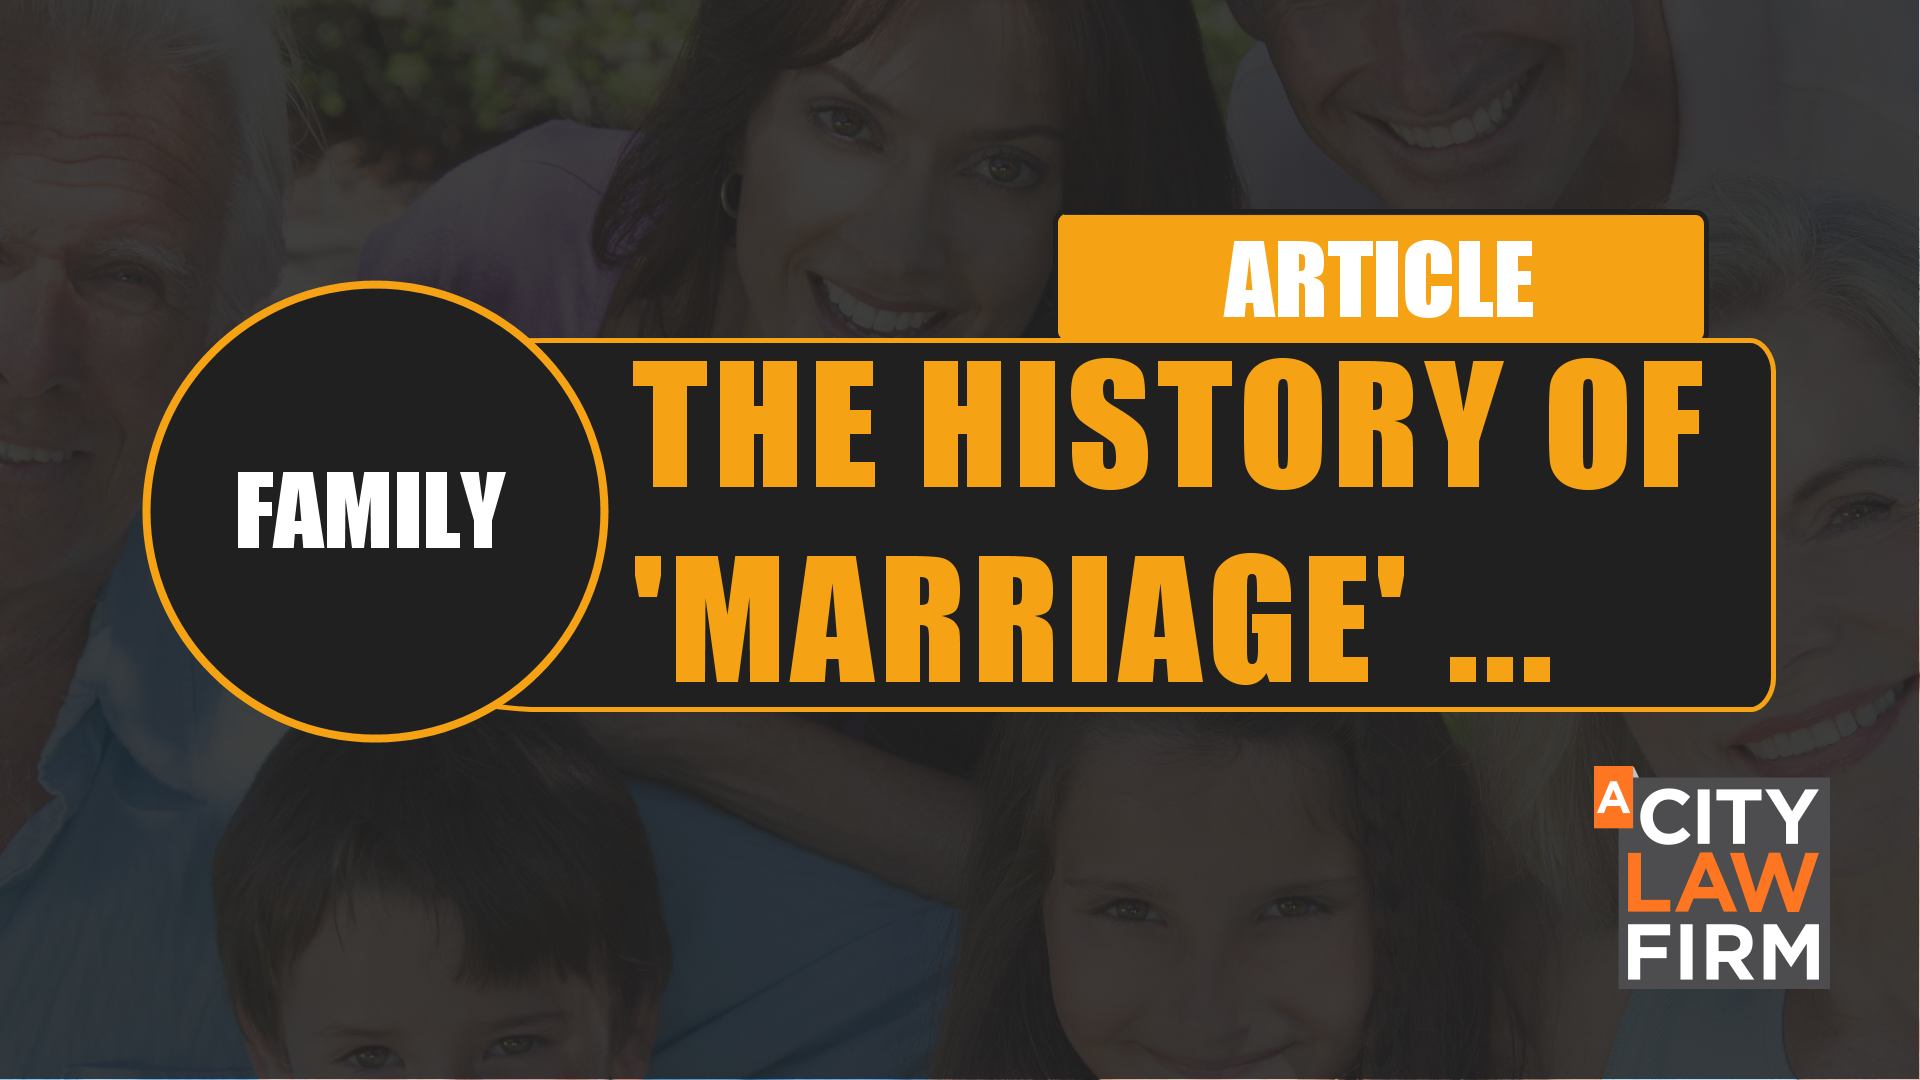 The history of 'marriage' : How many ways can a couple be together in the UK and what are the legal consequences together or through separation?